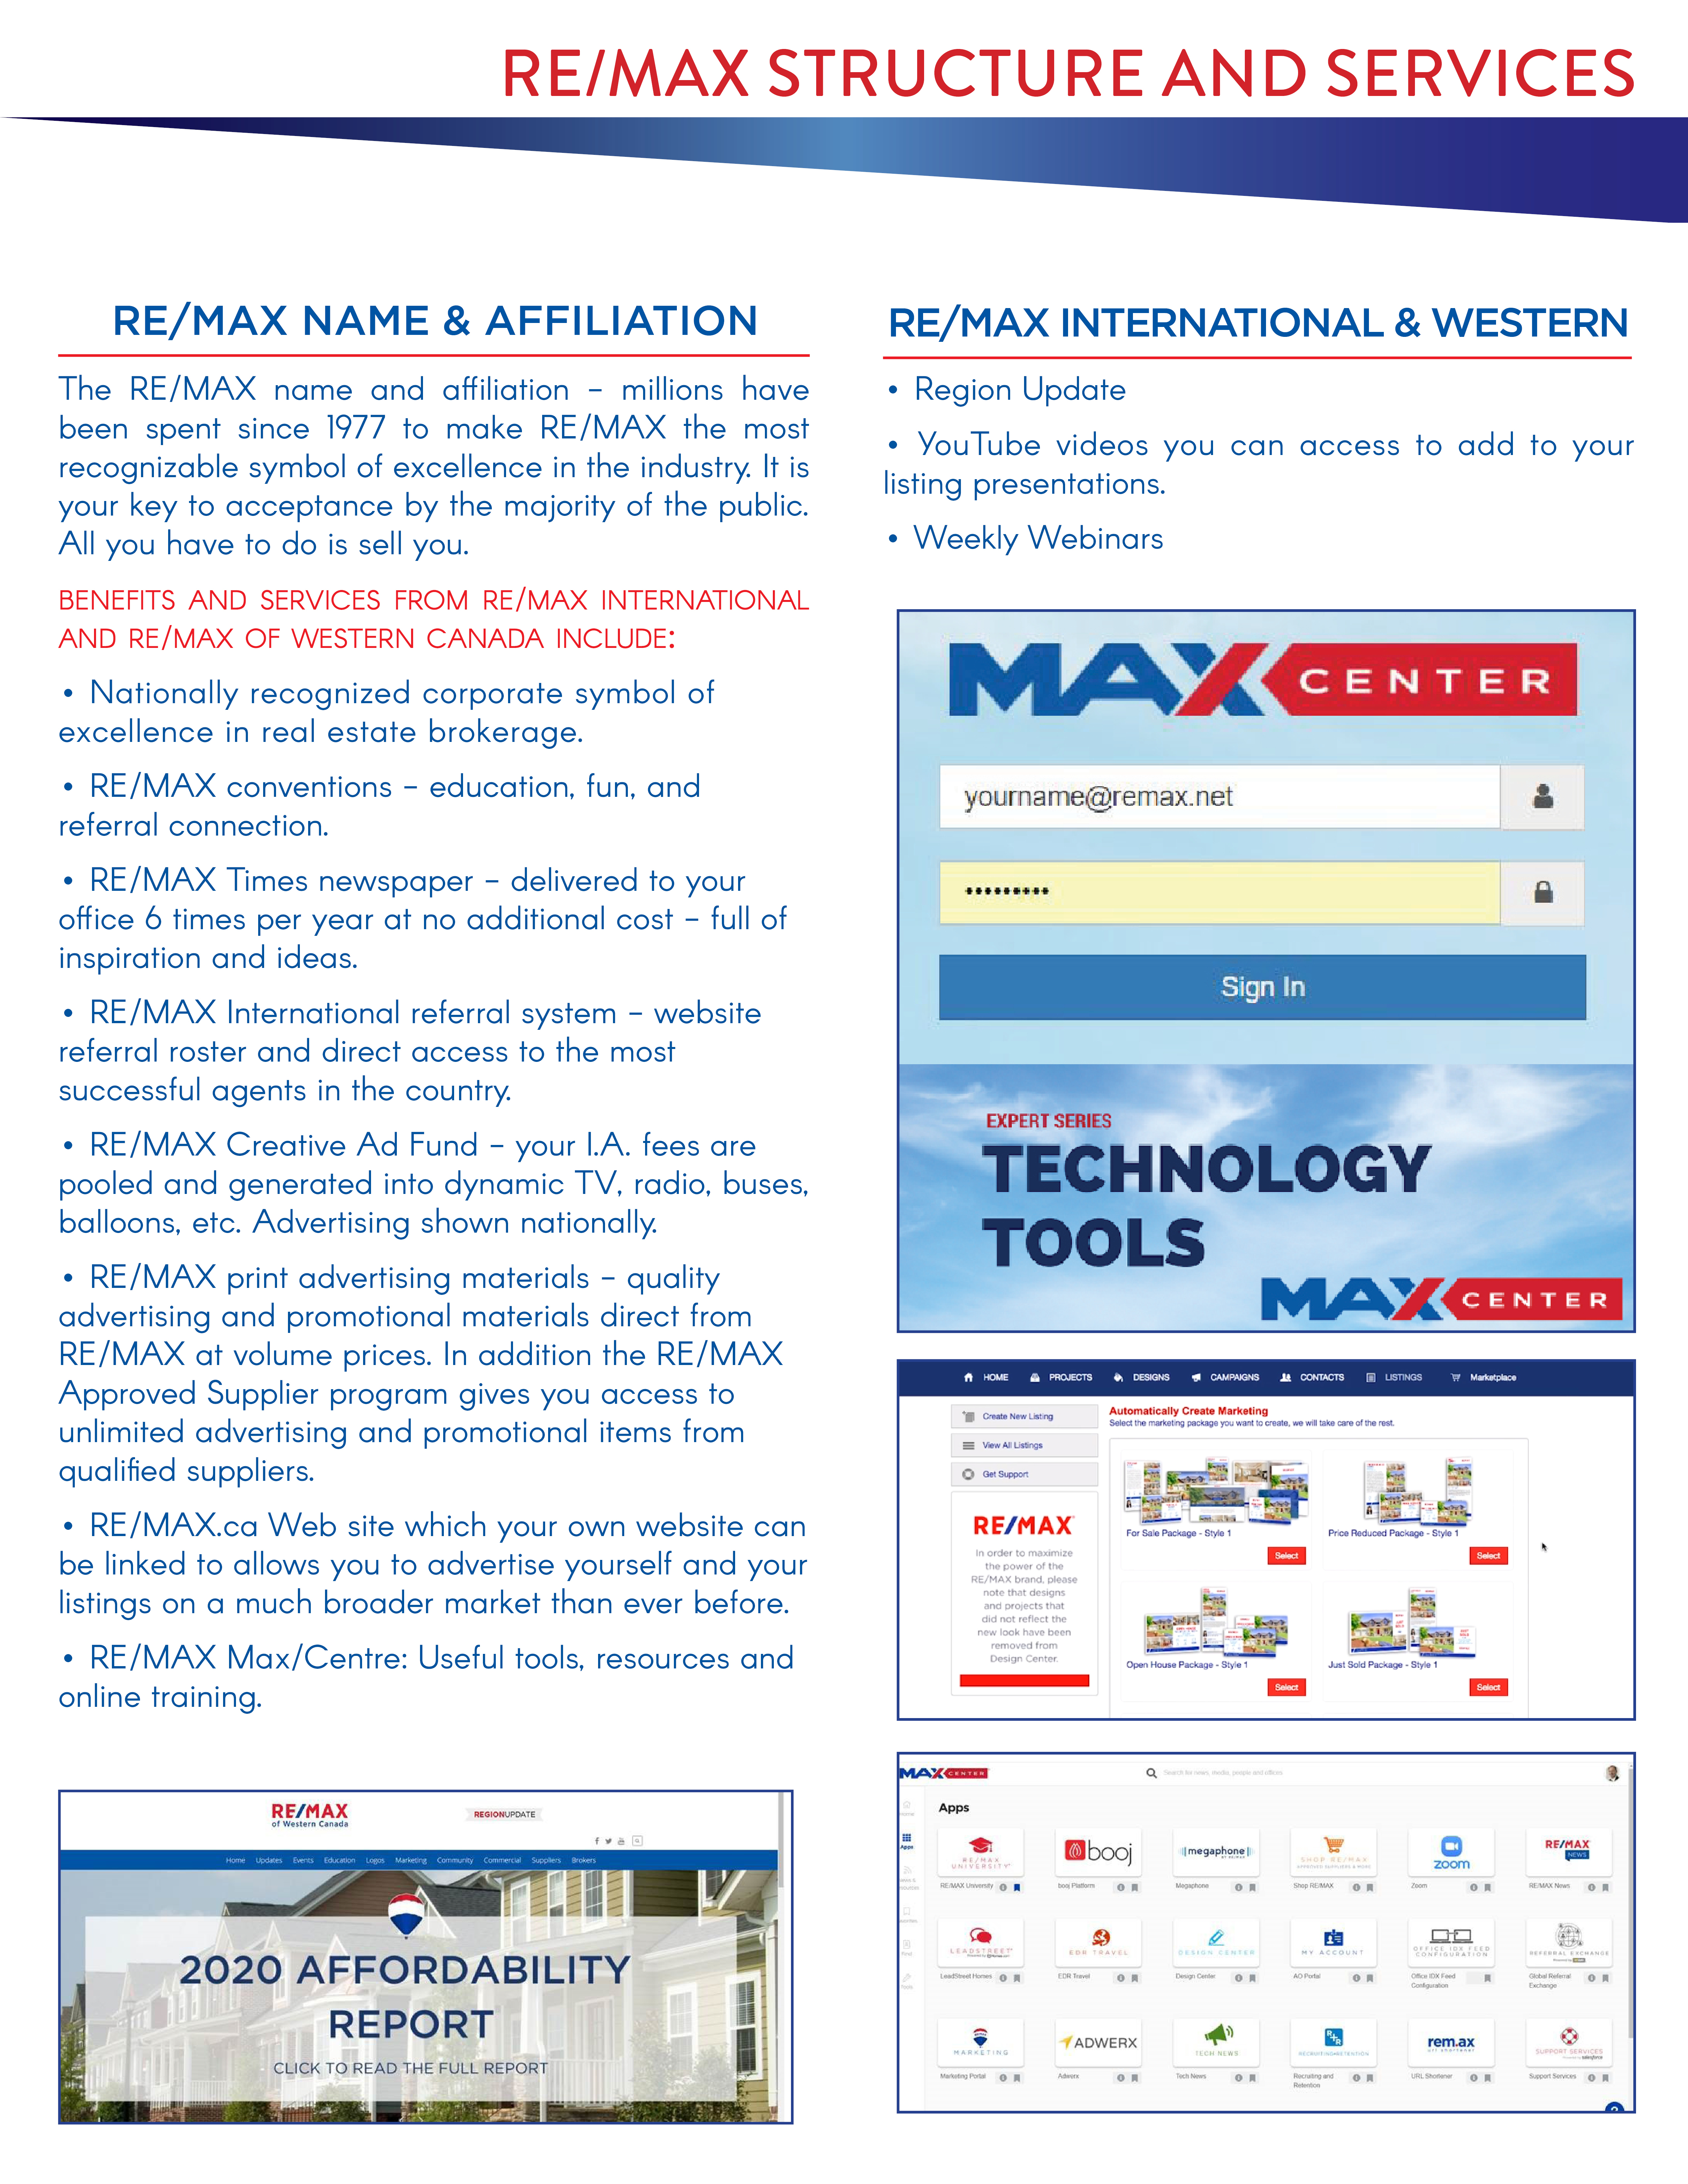 WEBIMAGES: REMAX Structure and Services.jpg